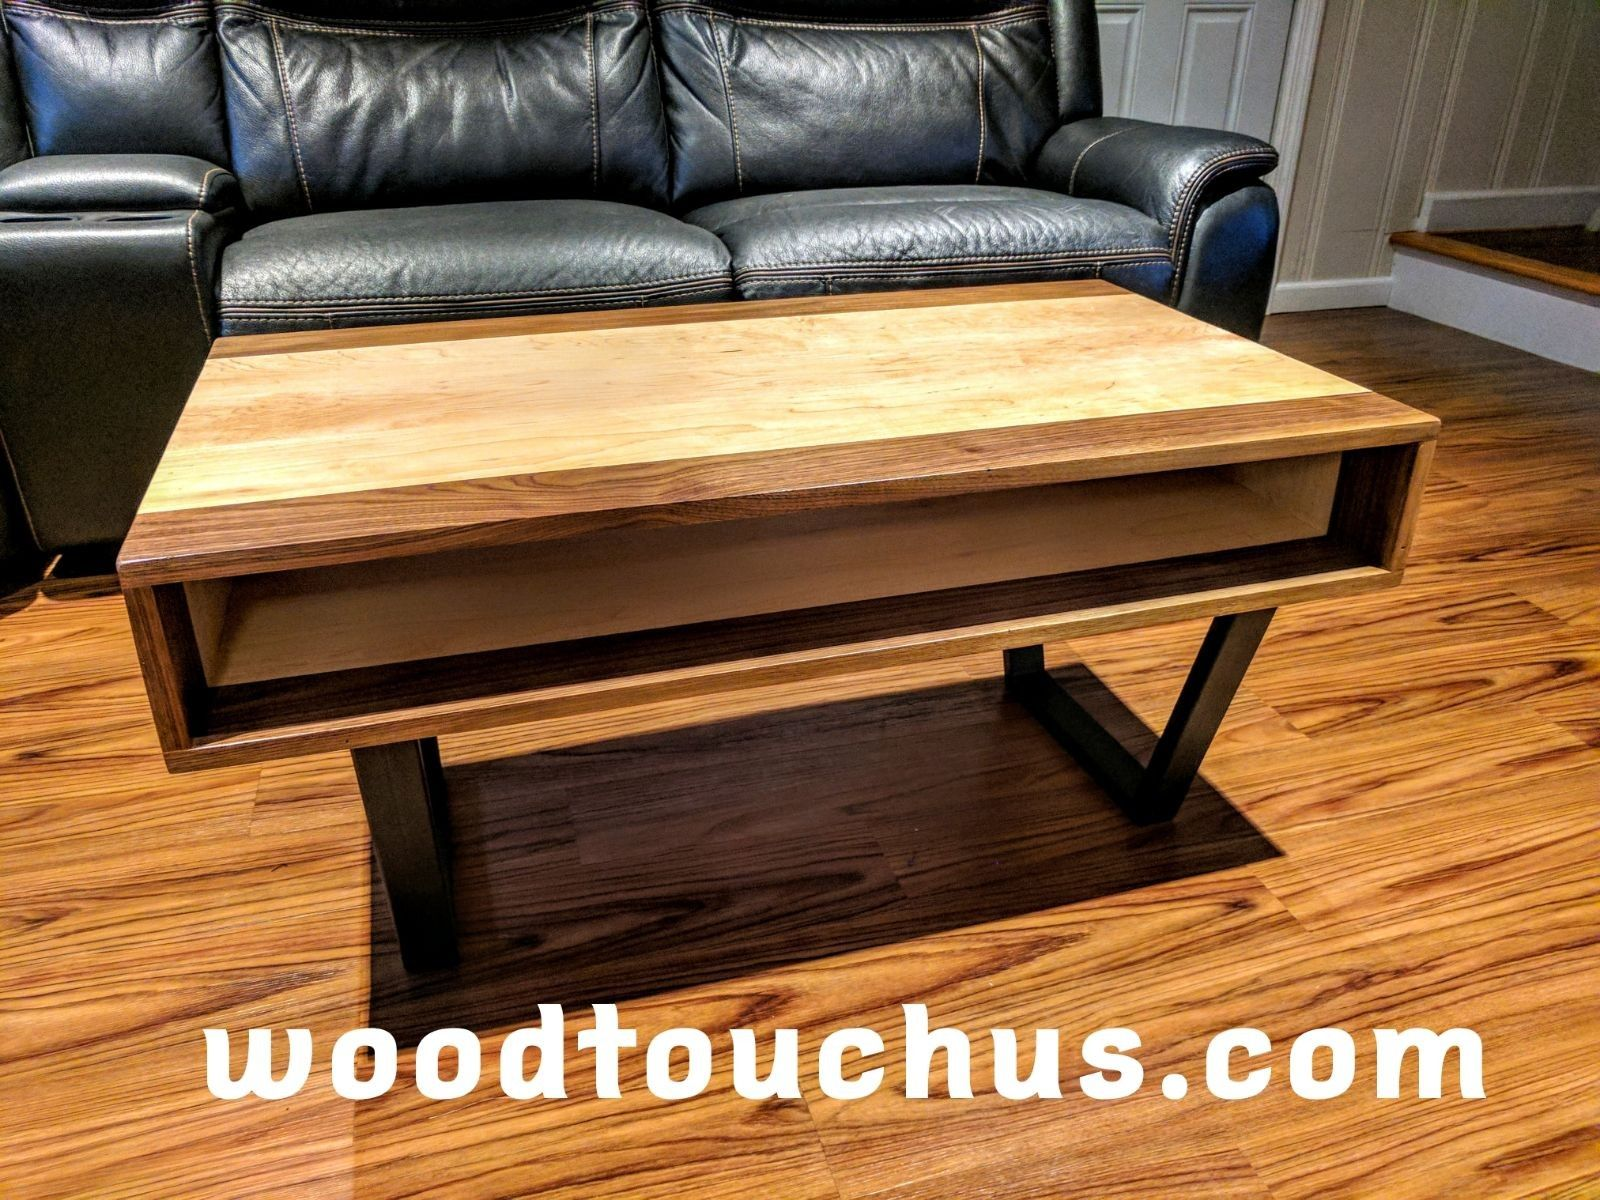 Beautiful Coffee Table Made Out Solid Black Walnut Wood And Hard Maple Wood With Custom Iron Legs Reclaimed Wood Furniture Rustic Wood Furniture Coffee Table